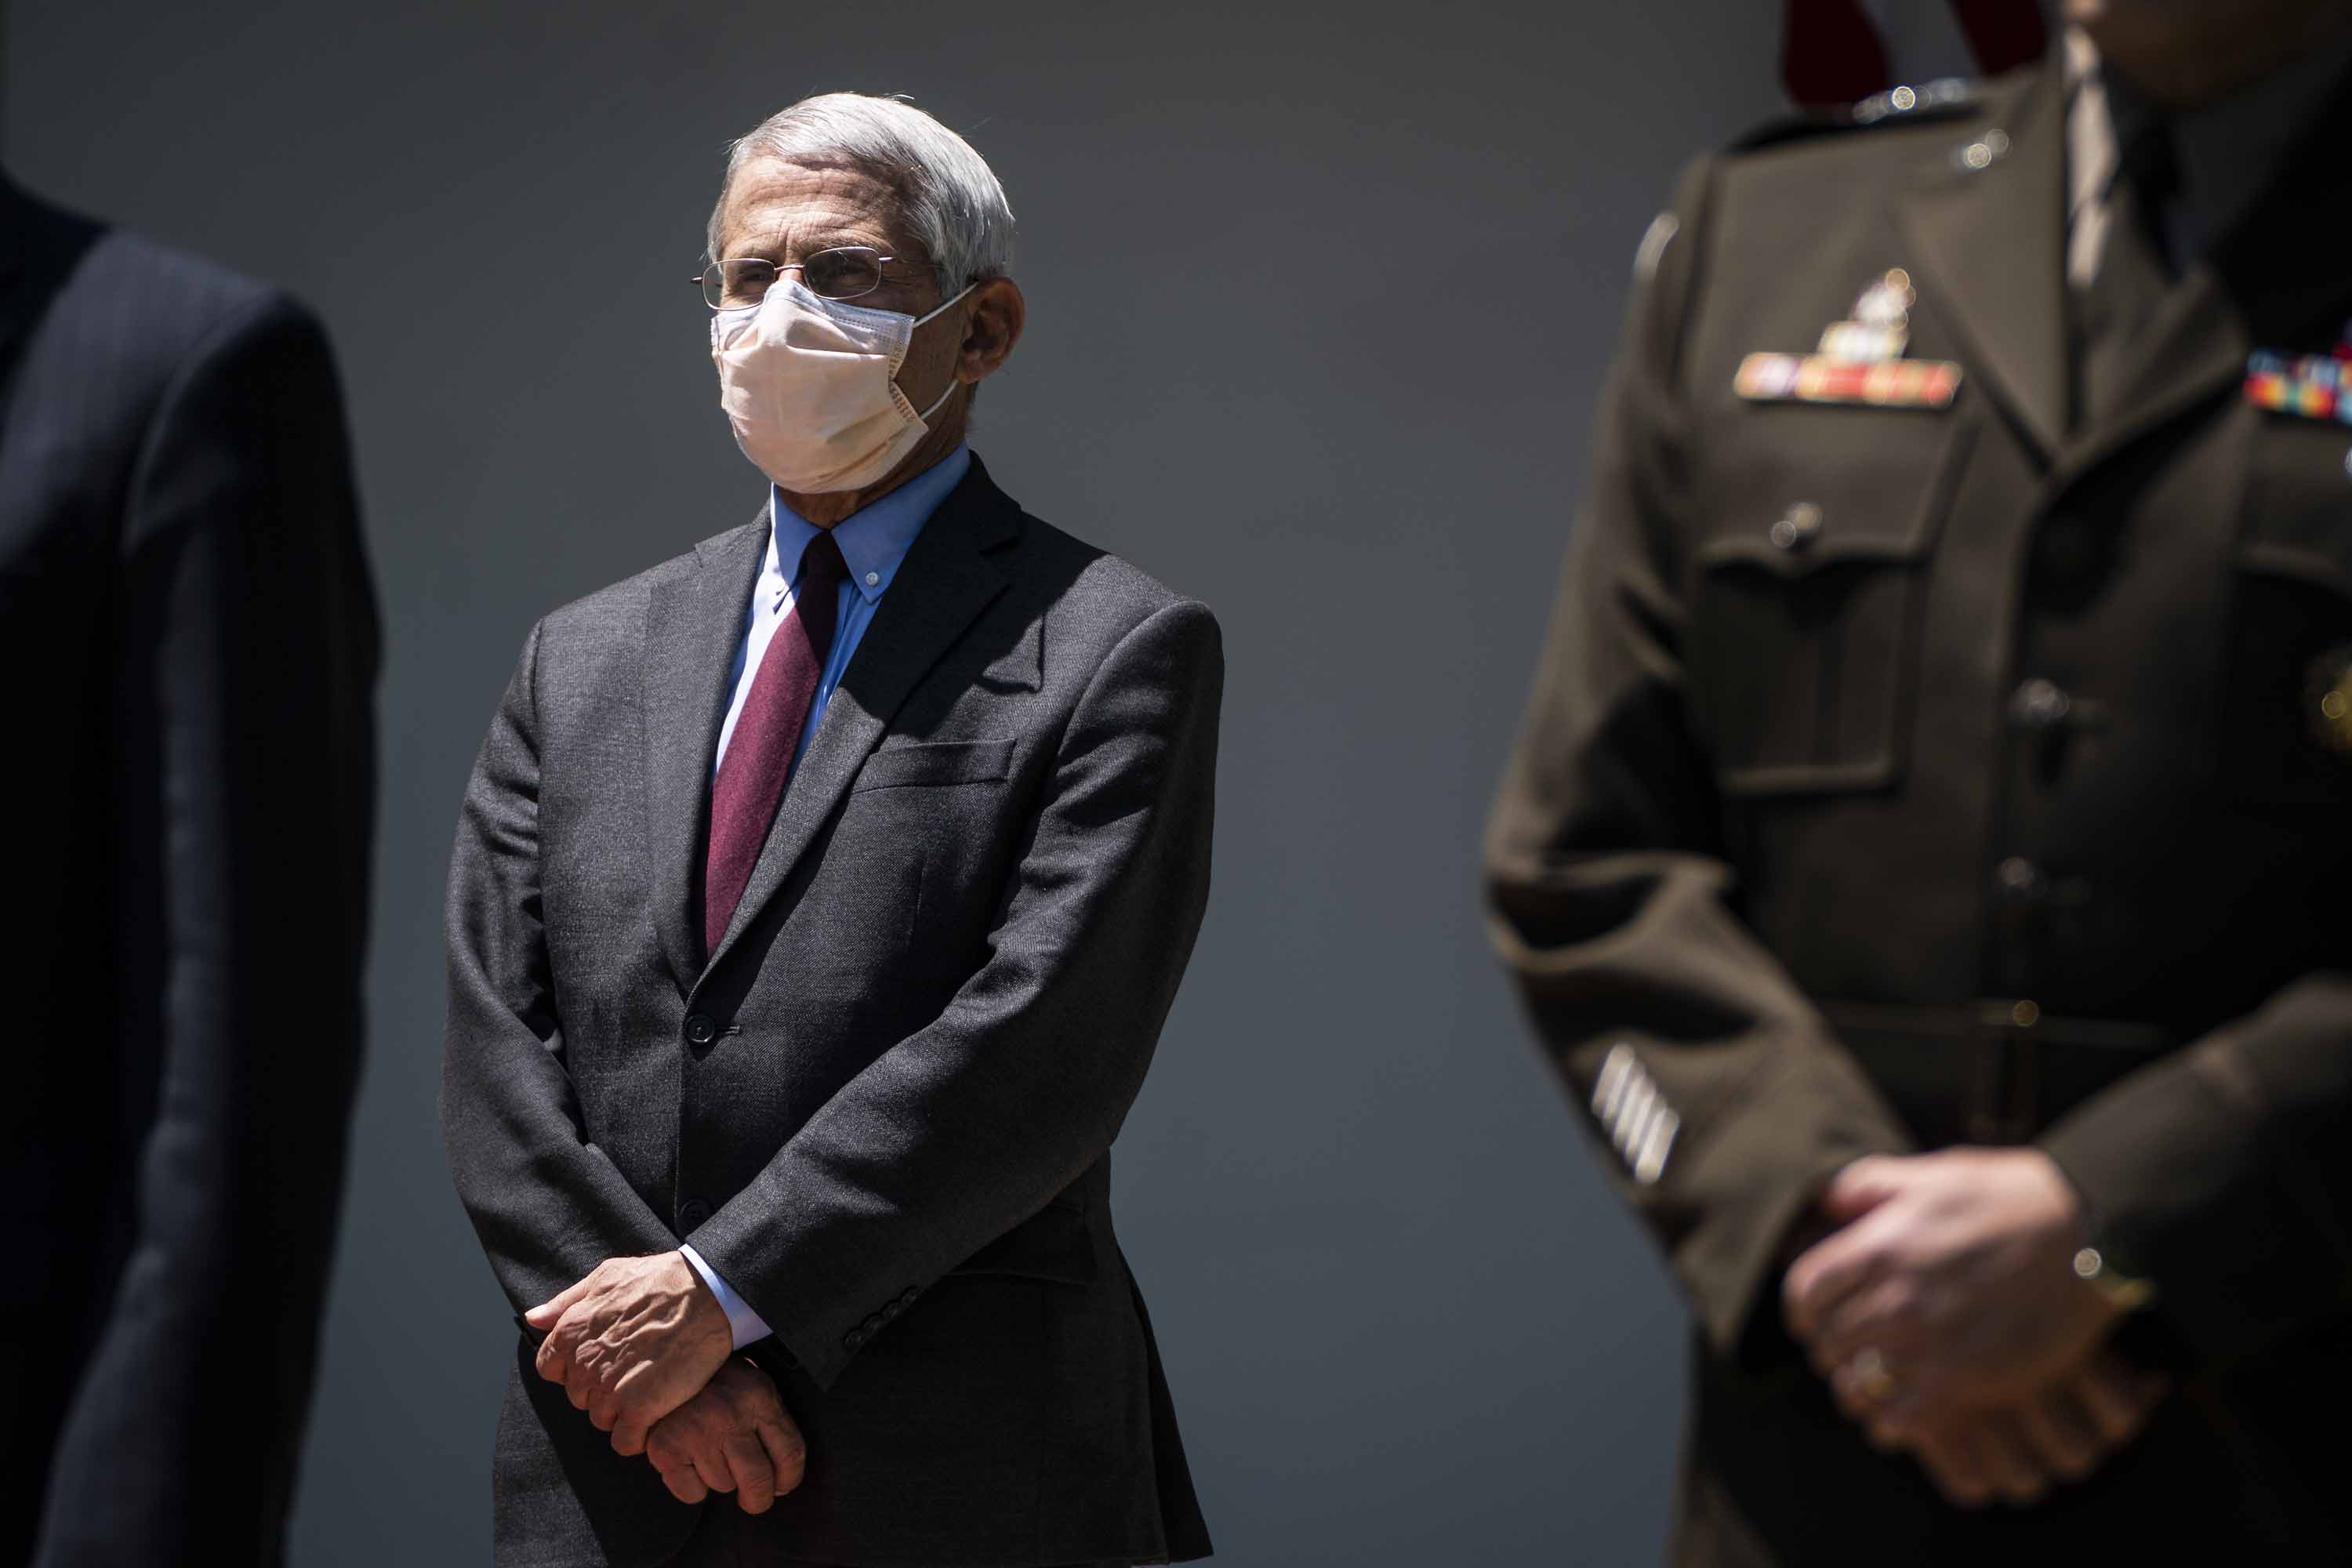 Director of the National Institute of Allergy and Infectious Diseases Dr. Anthony Fauci is pictured during an event in the Rose Garden at the White House on May 15.